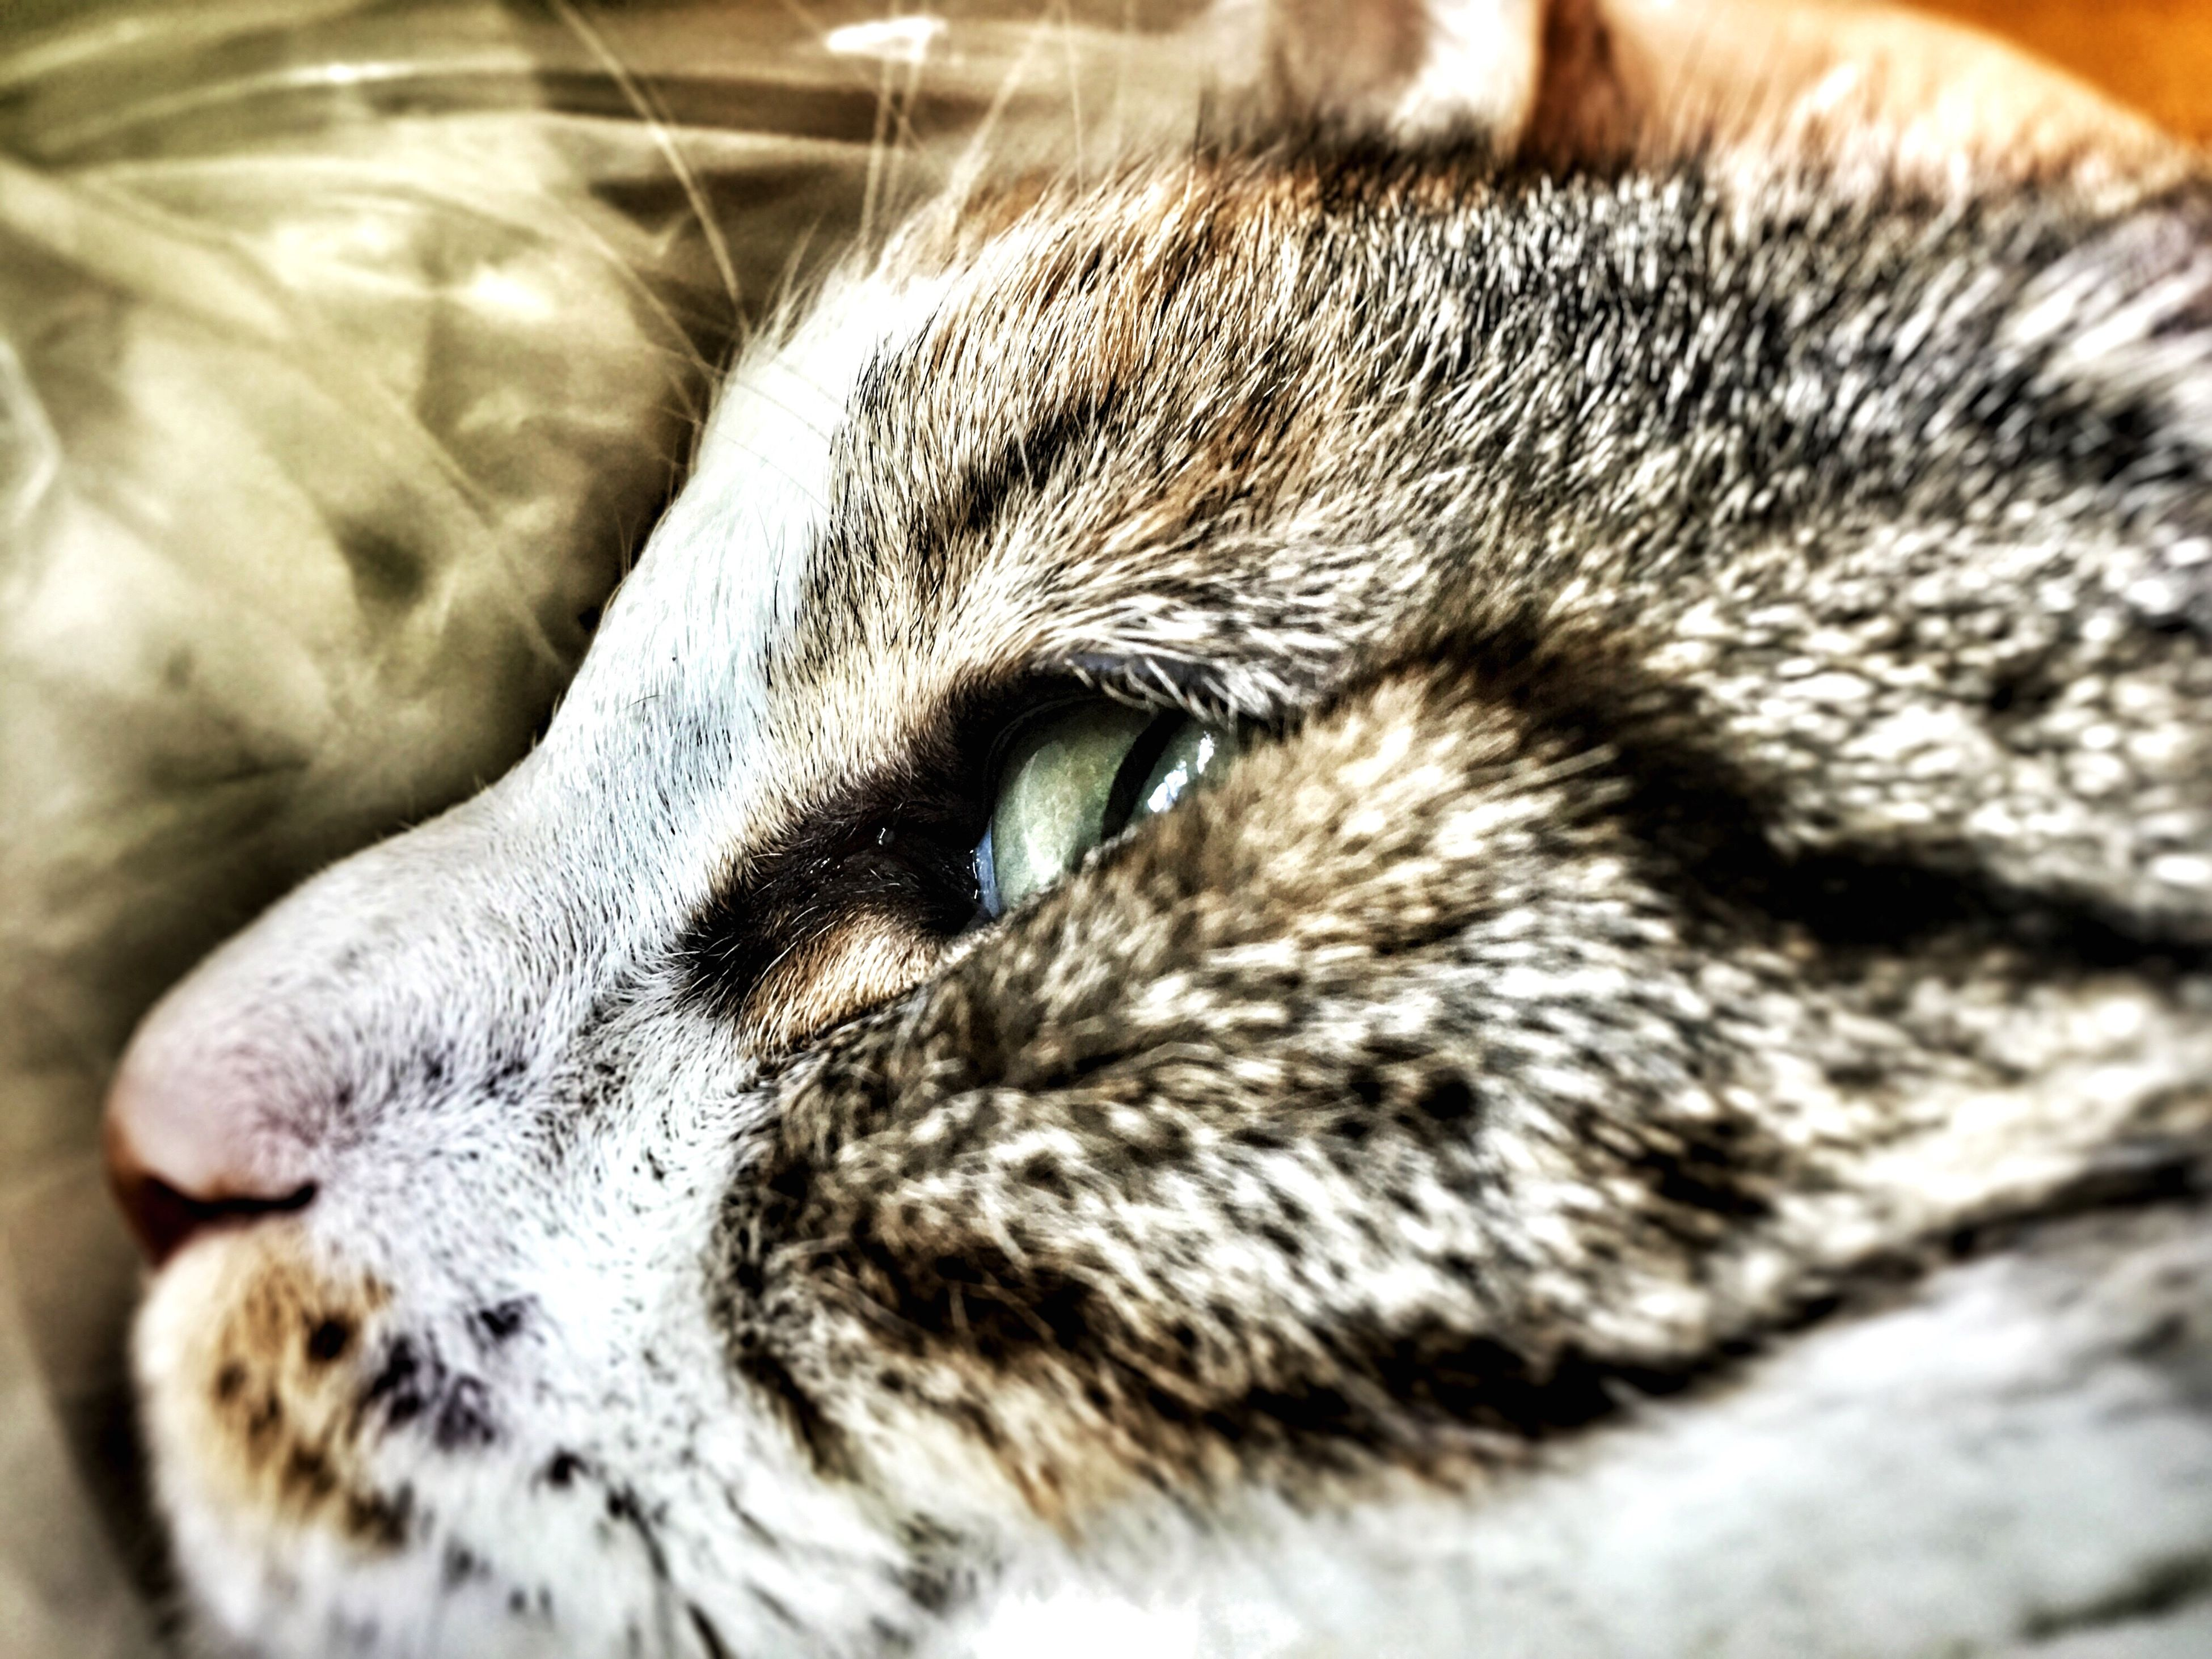 one animal, animal themes, pets, close-up, animal head, domestic animals, animal body part, mammal, indoors, domestic cat, whisker, cat, focus on foreground, animal eye, feline, part of, portrait, looking away, selective focus